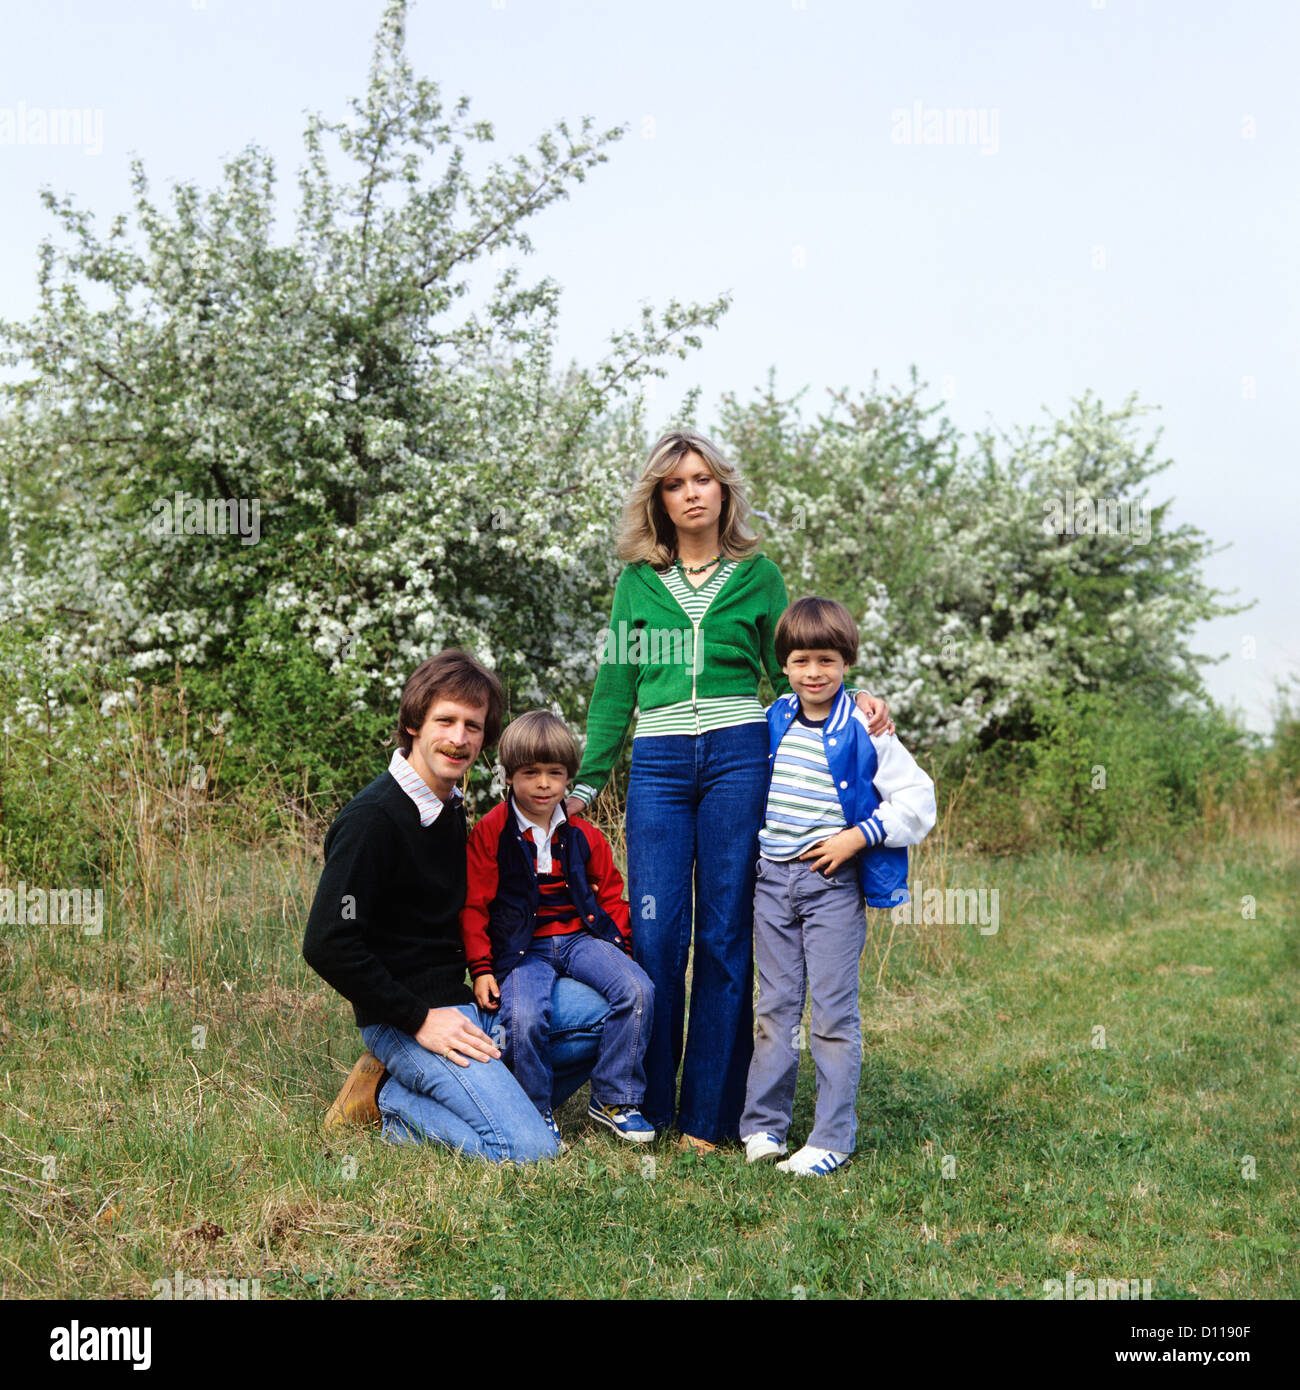 1970s PORTRAIT FAMILY STANDING IN ORCHARD MOTHER FATHER TWO BOYS - Stock Image